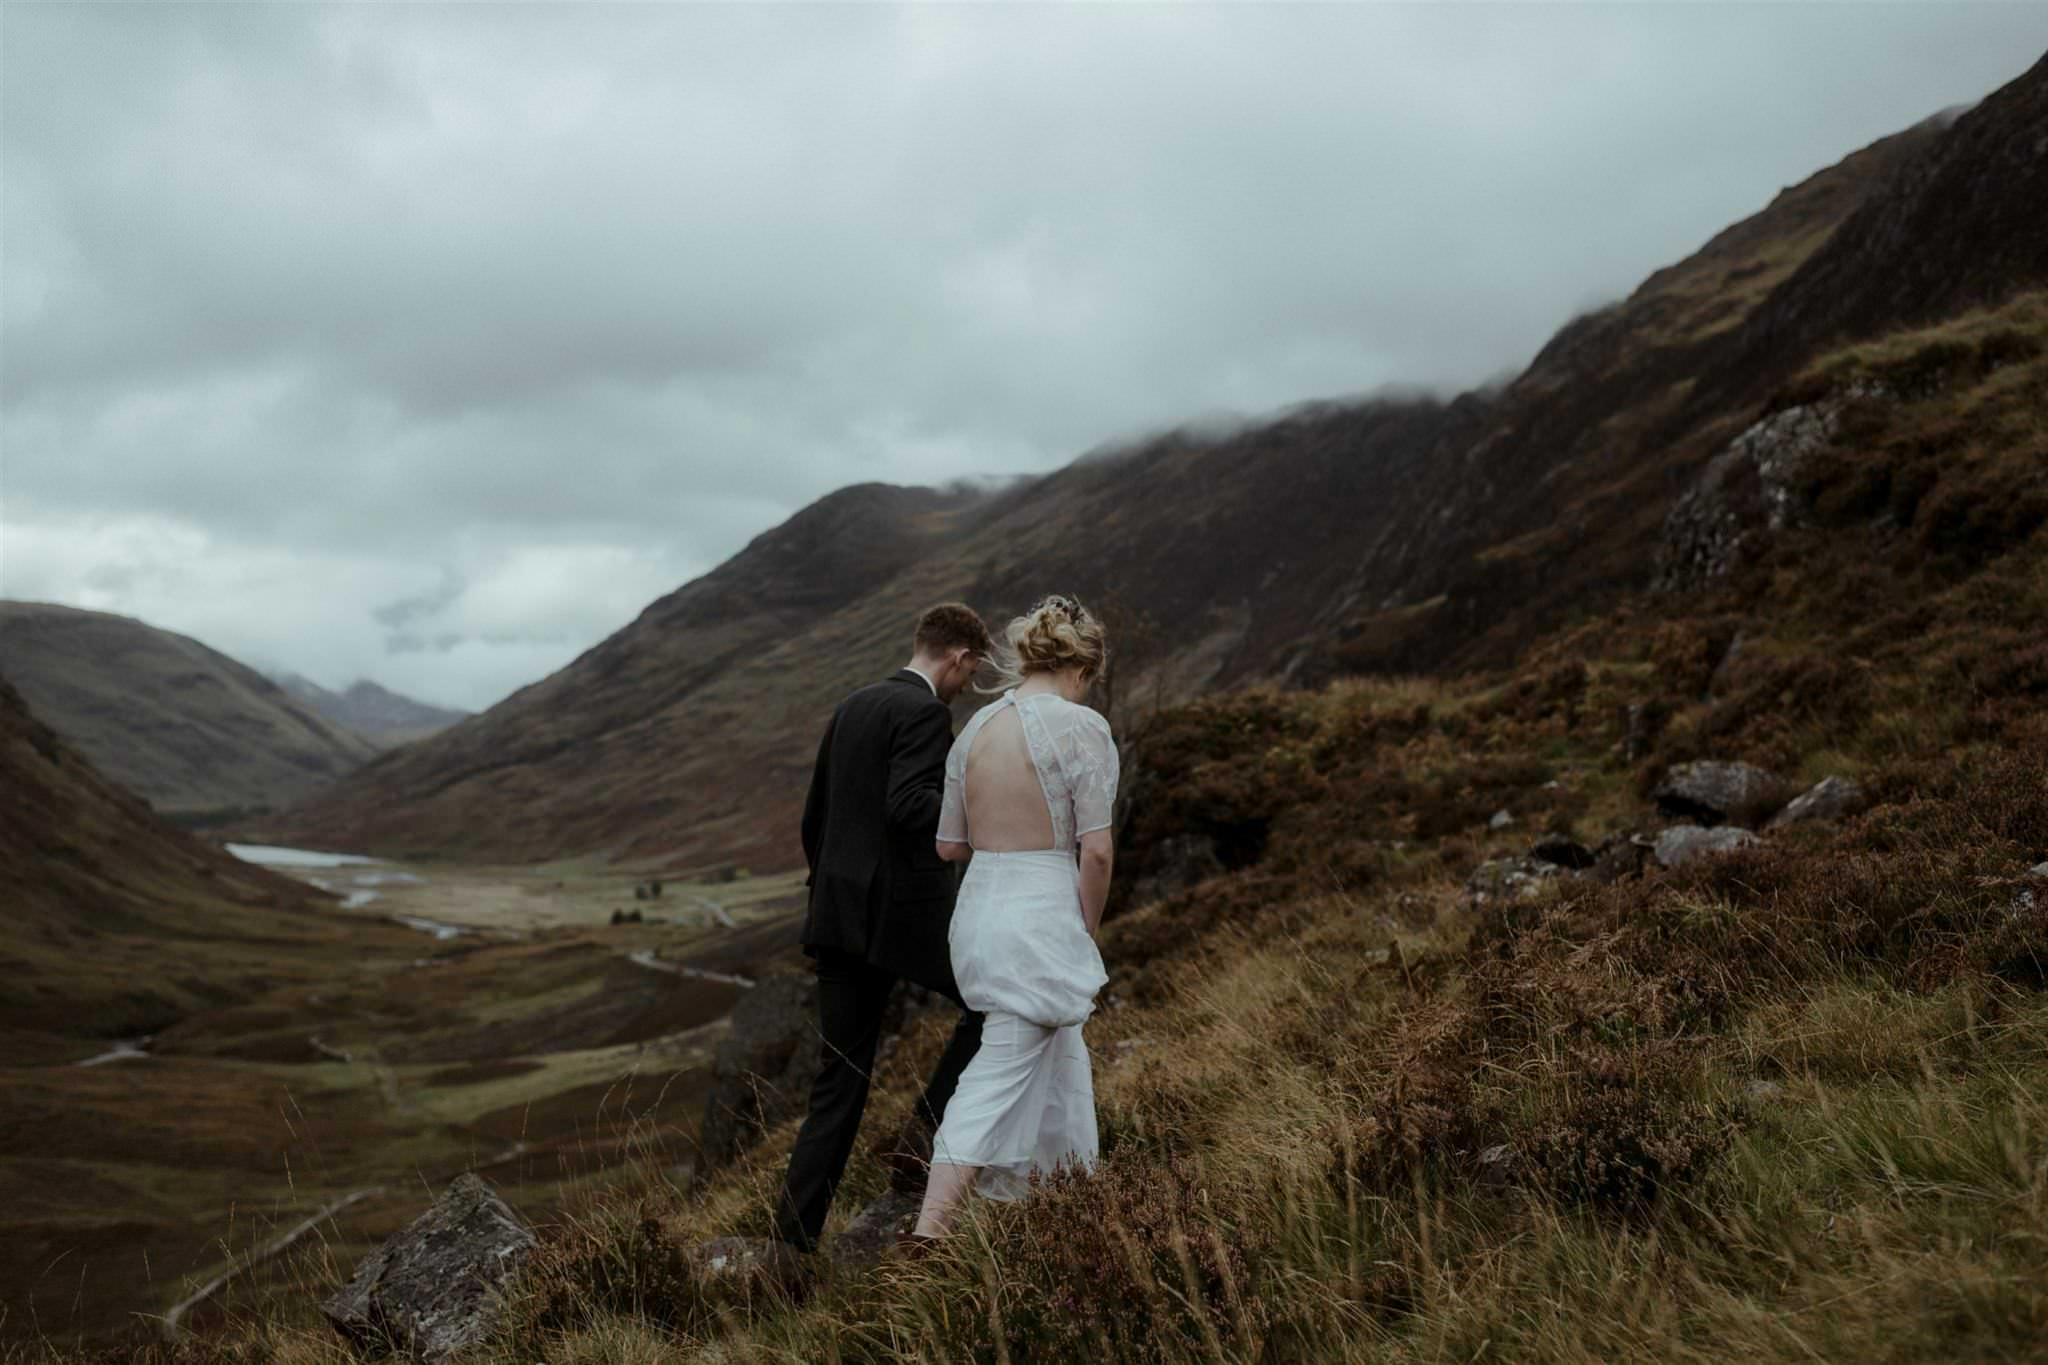 Couples walking hand-in-hand at their wedding for two in Scotland